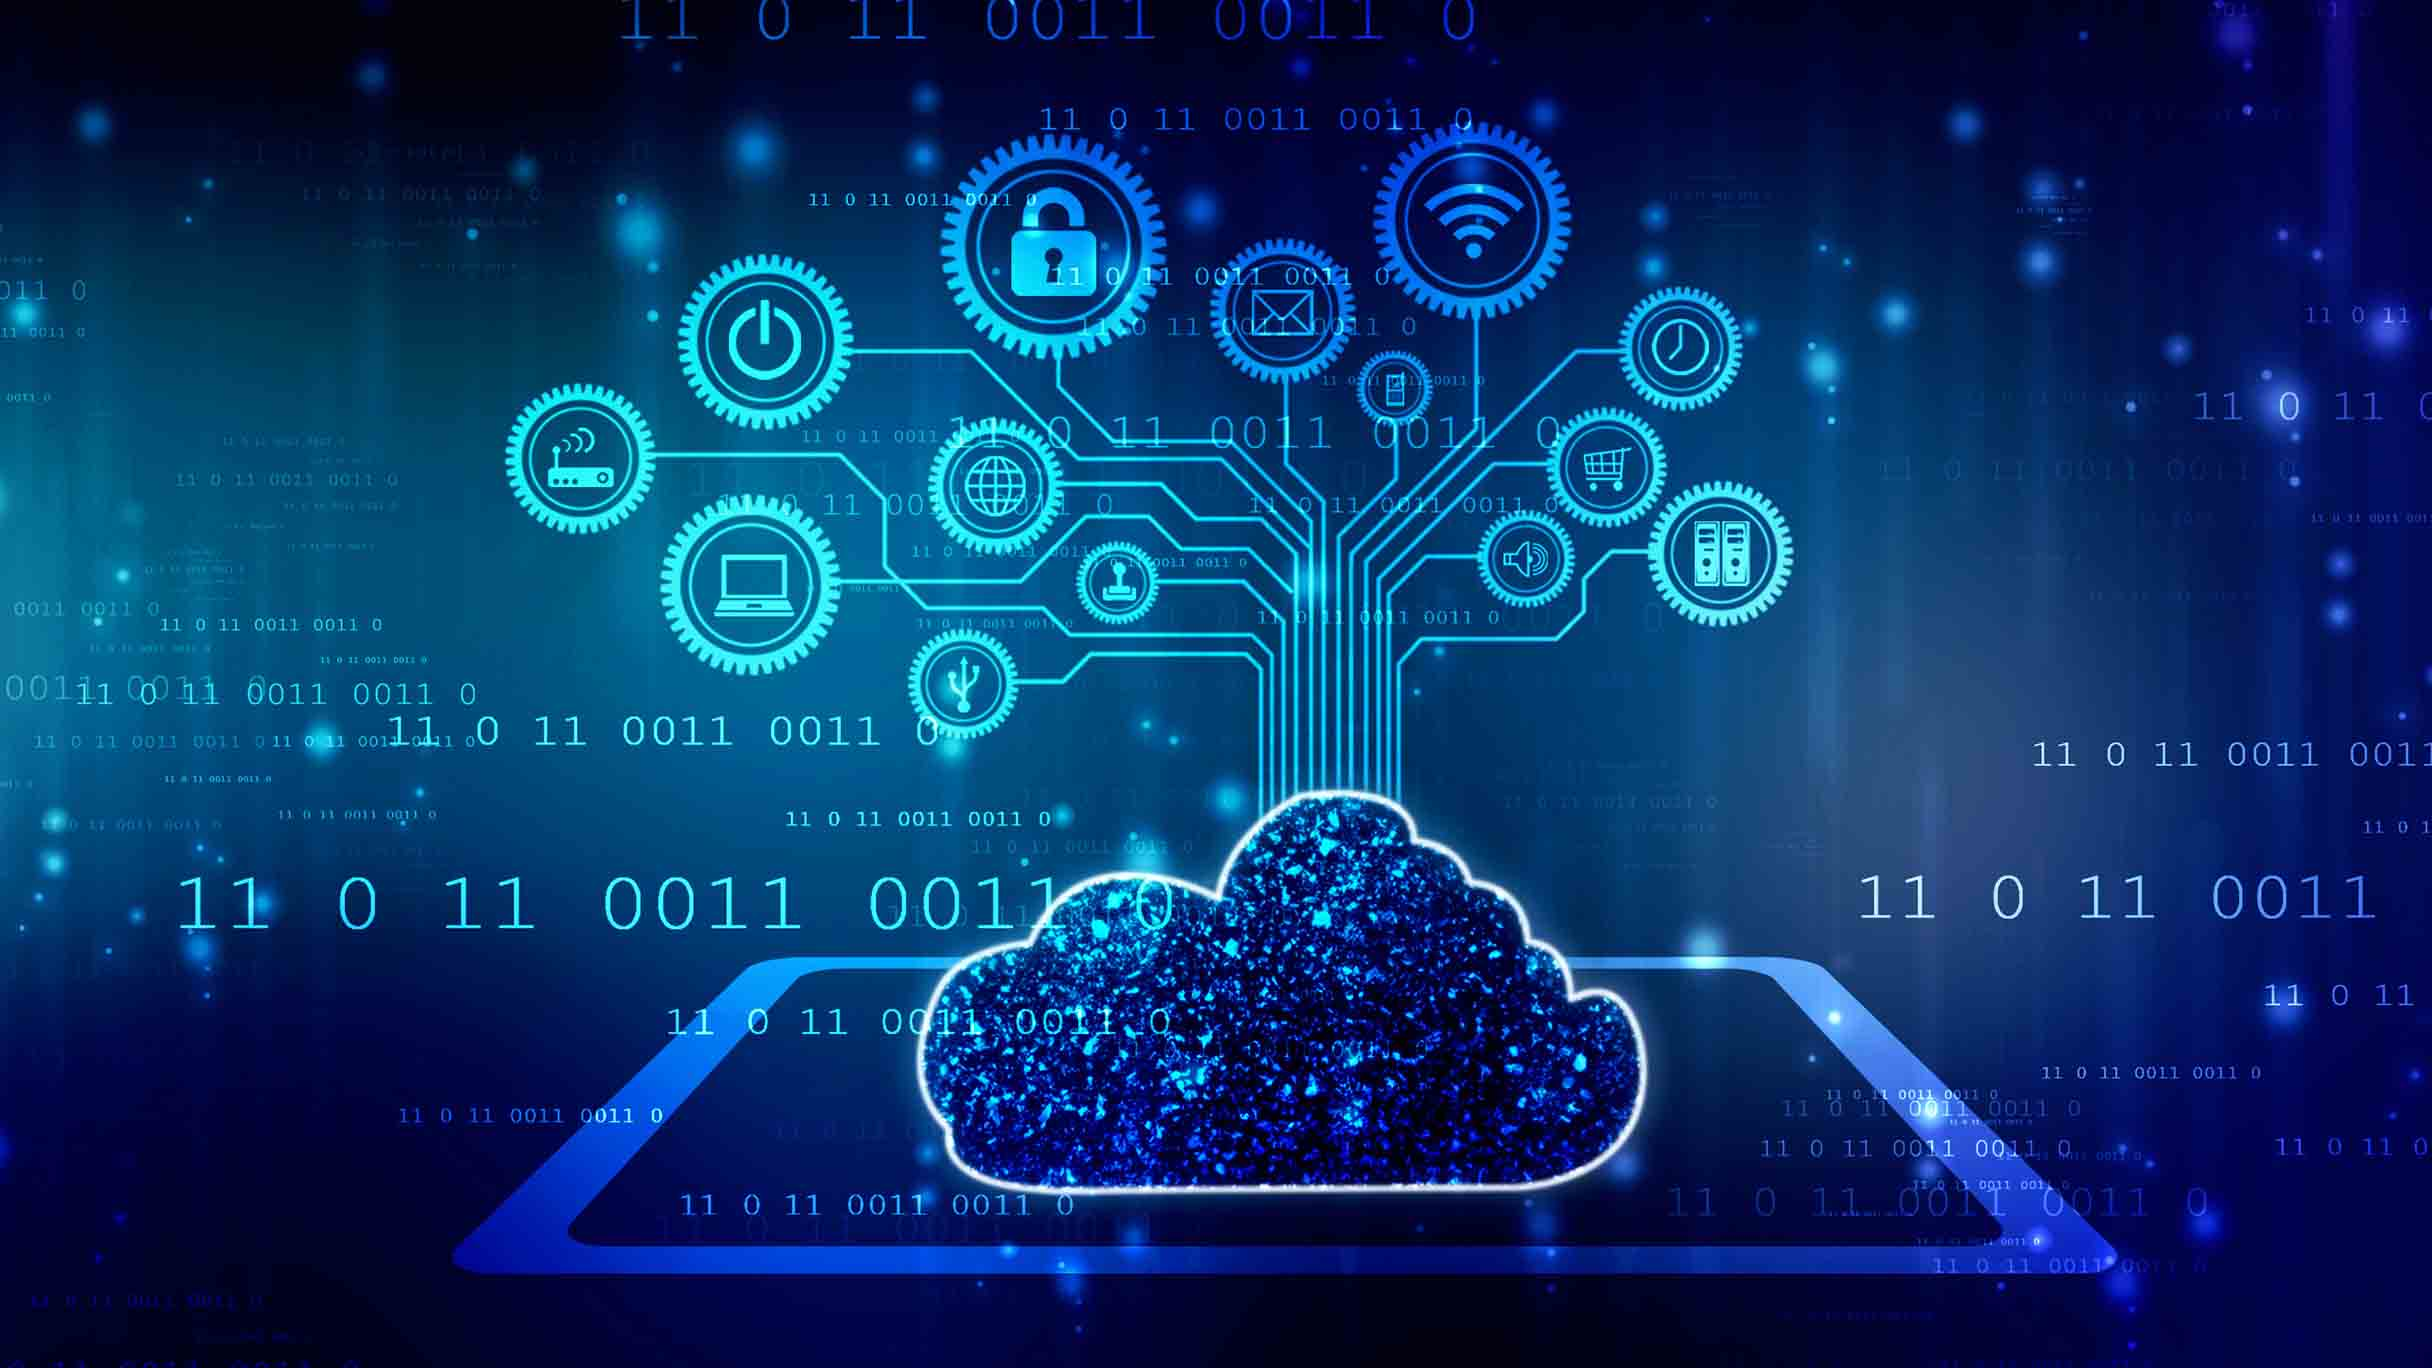 Hybrid manufacturing uses edge to cloud technology | GE Digital